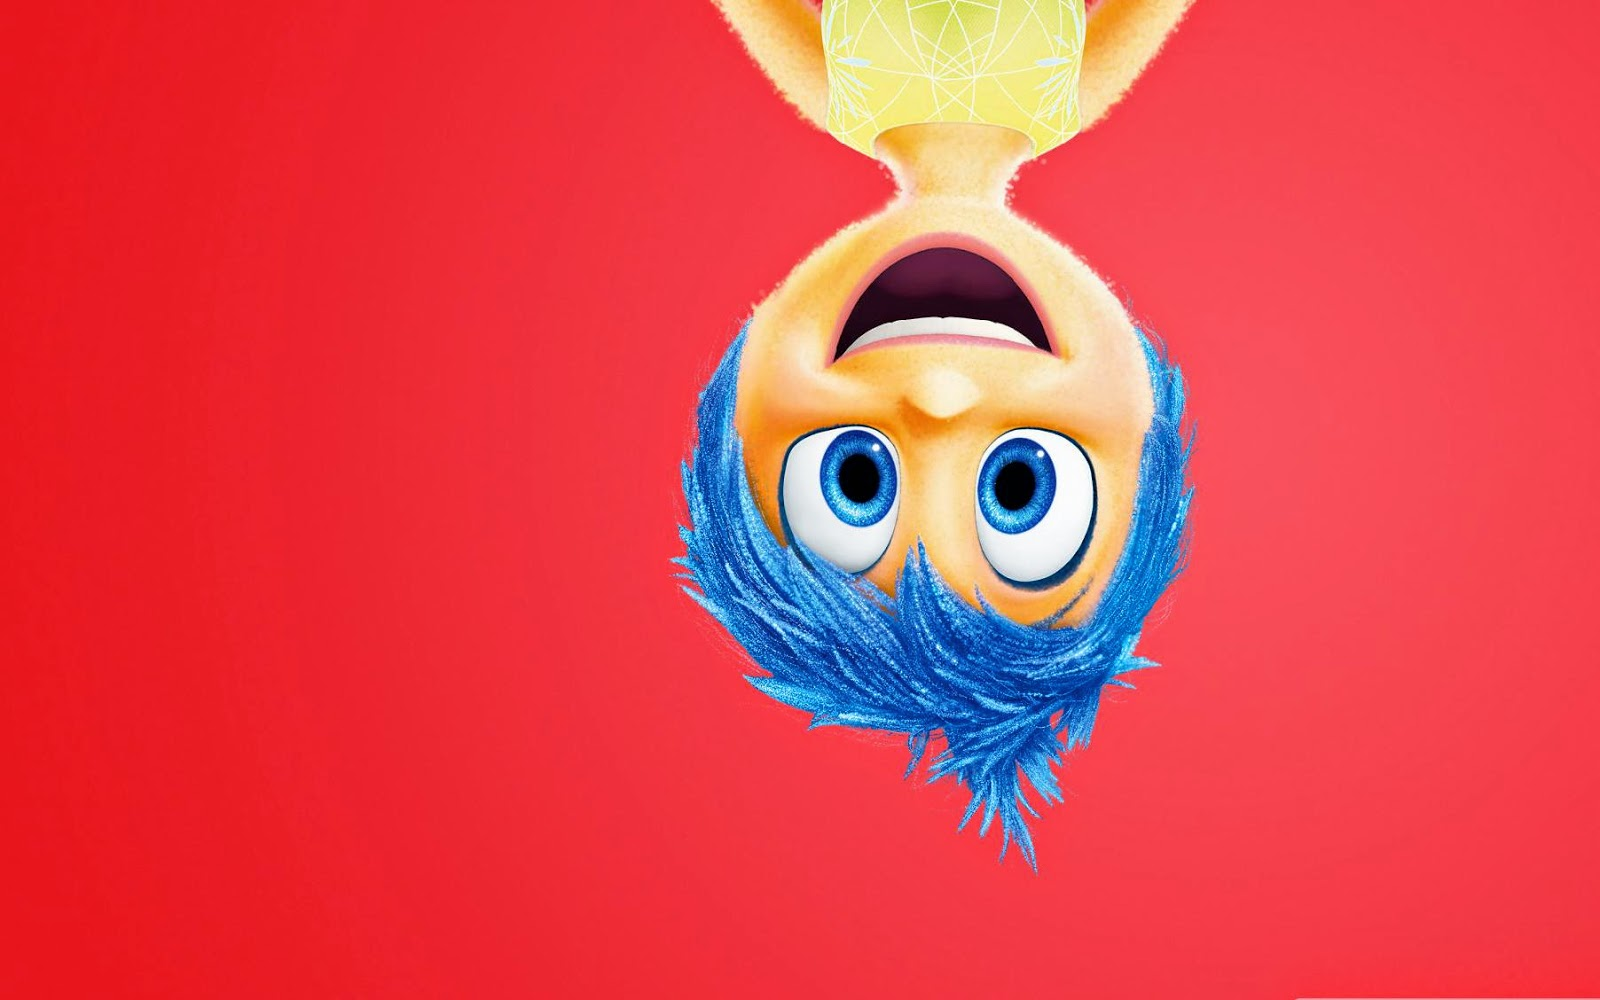 Free Inside Out 2015 Disney Wallpaper HD Pixar